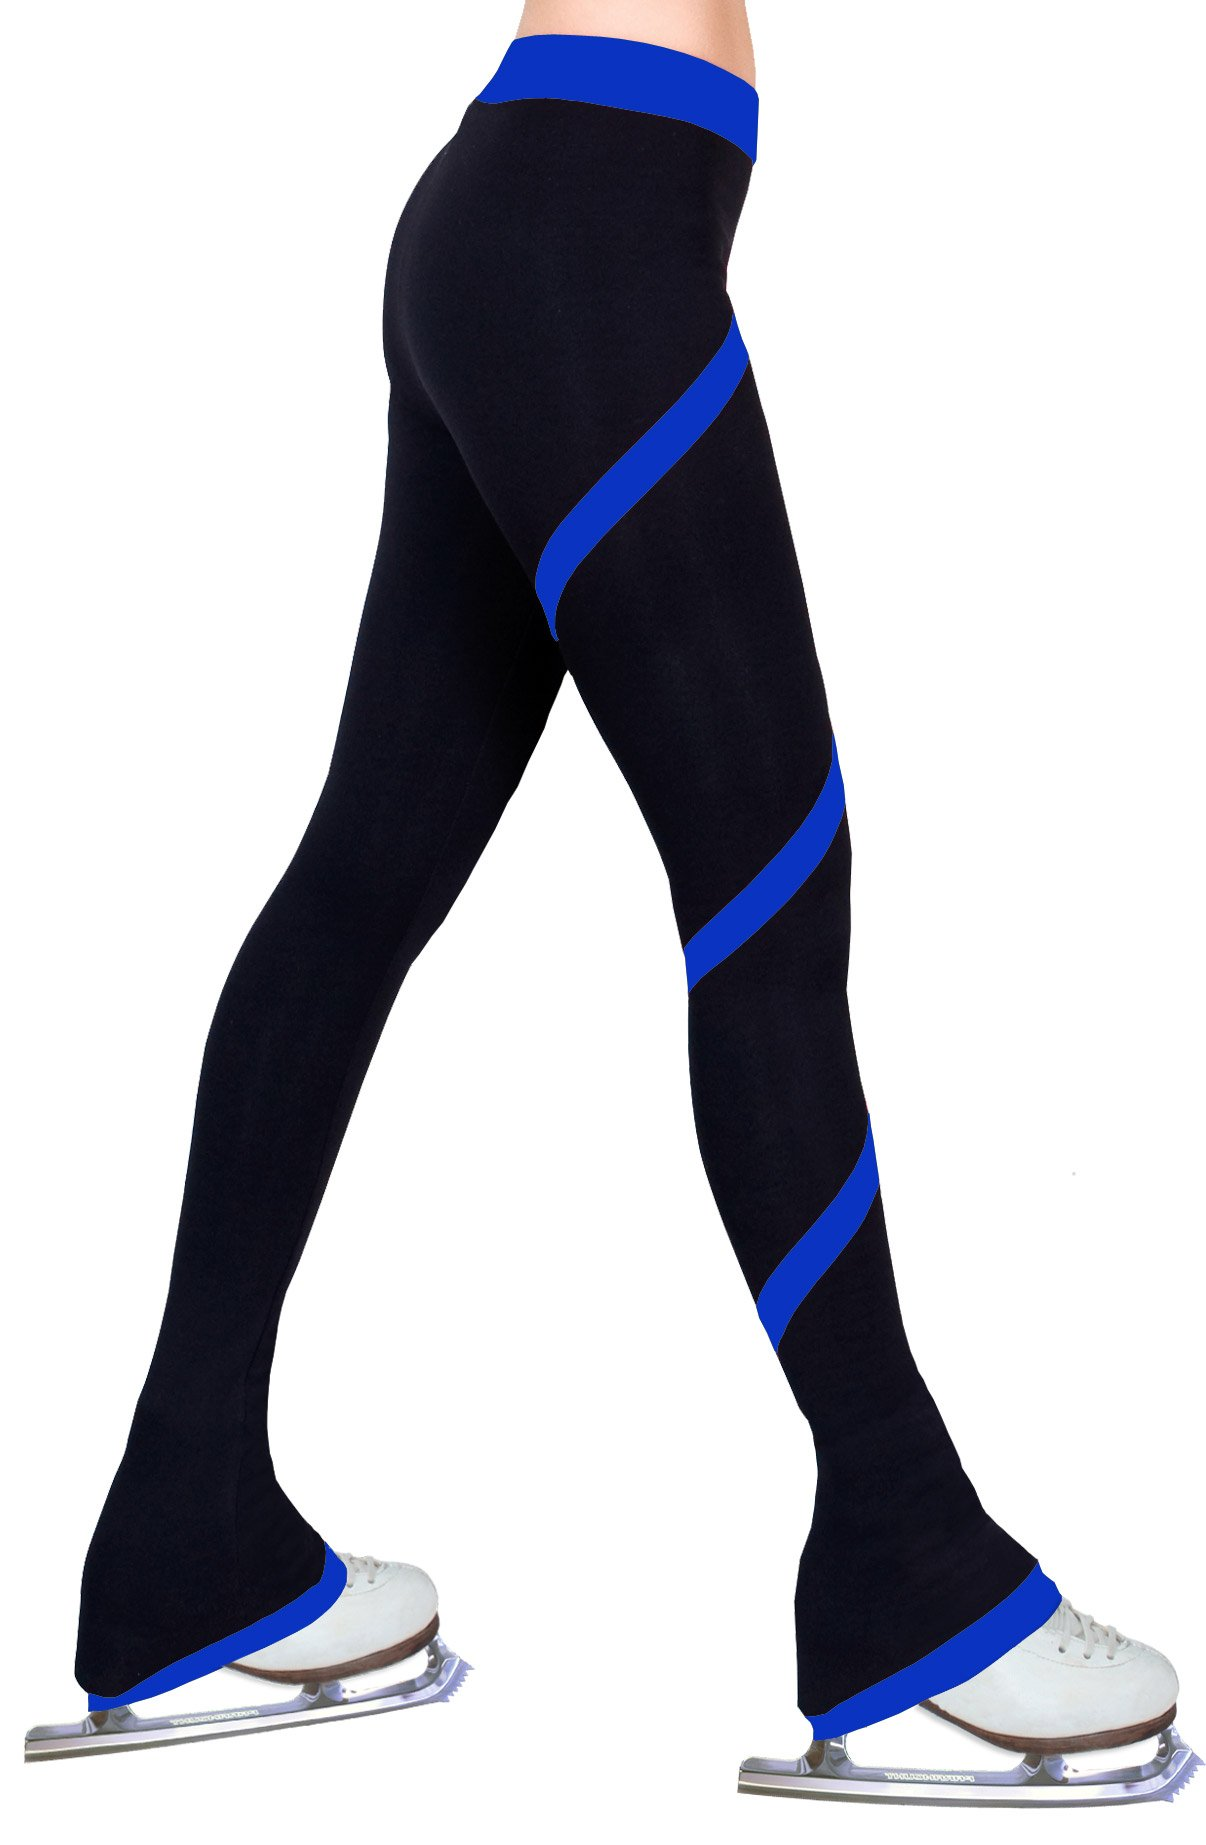 ny2 Sportswear Figure Skating Spiral Polartec Polar Fleece Pants (Royal Blue, Child Small) by ny2 Sportswear